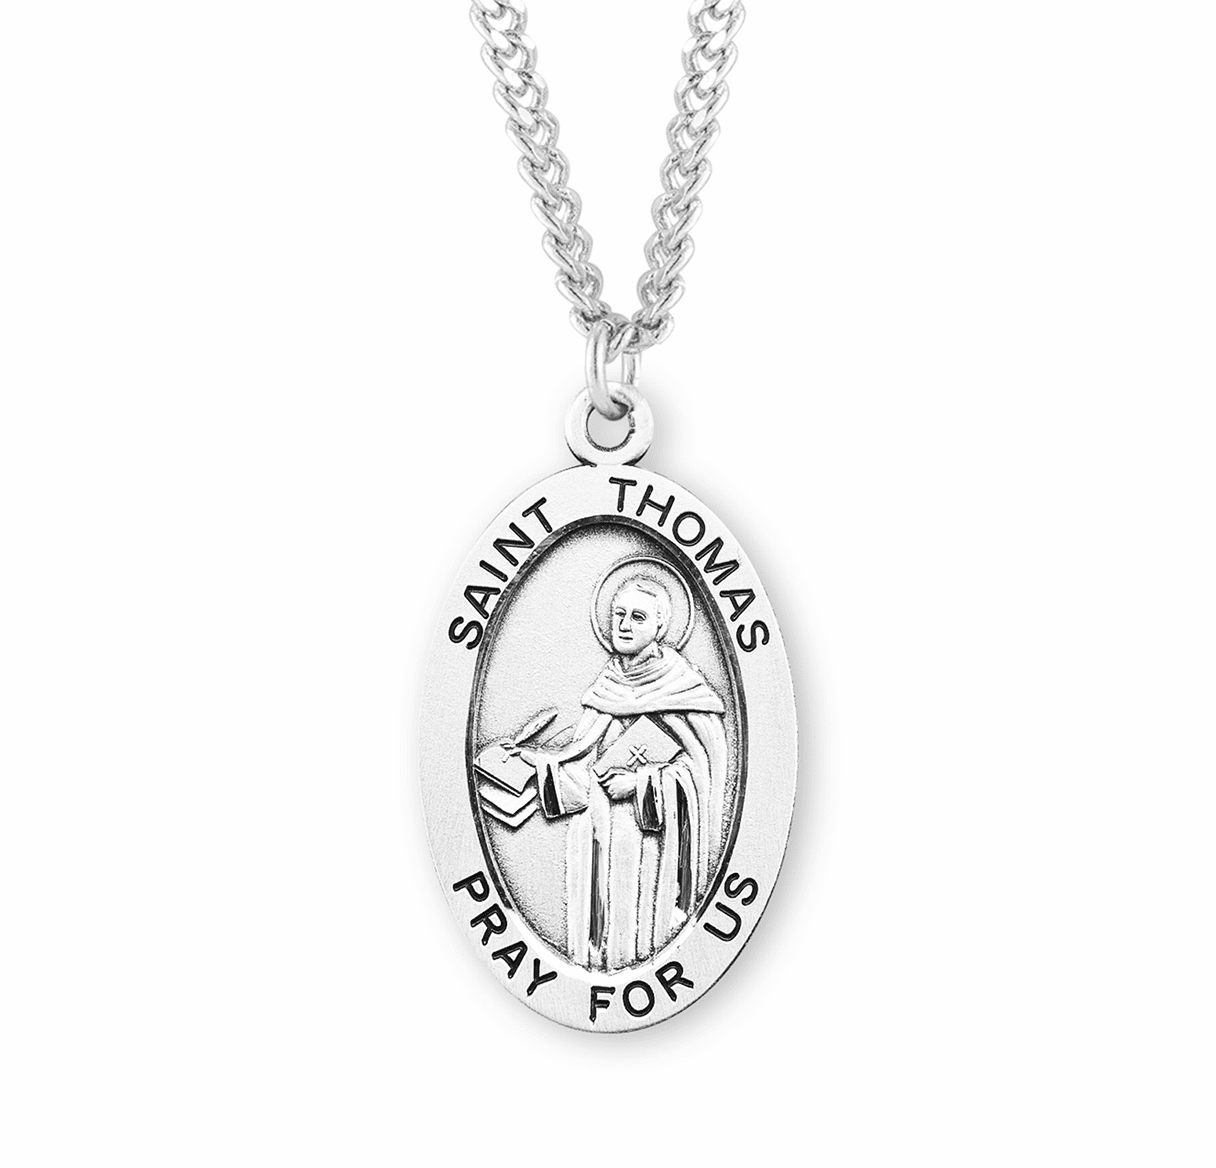 St Thomas Large Oval Sterling Silver Patron Saint Medals by HMH Religious